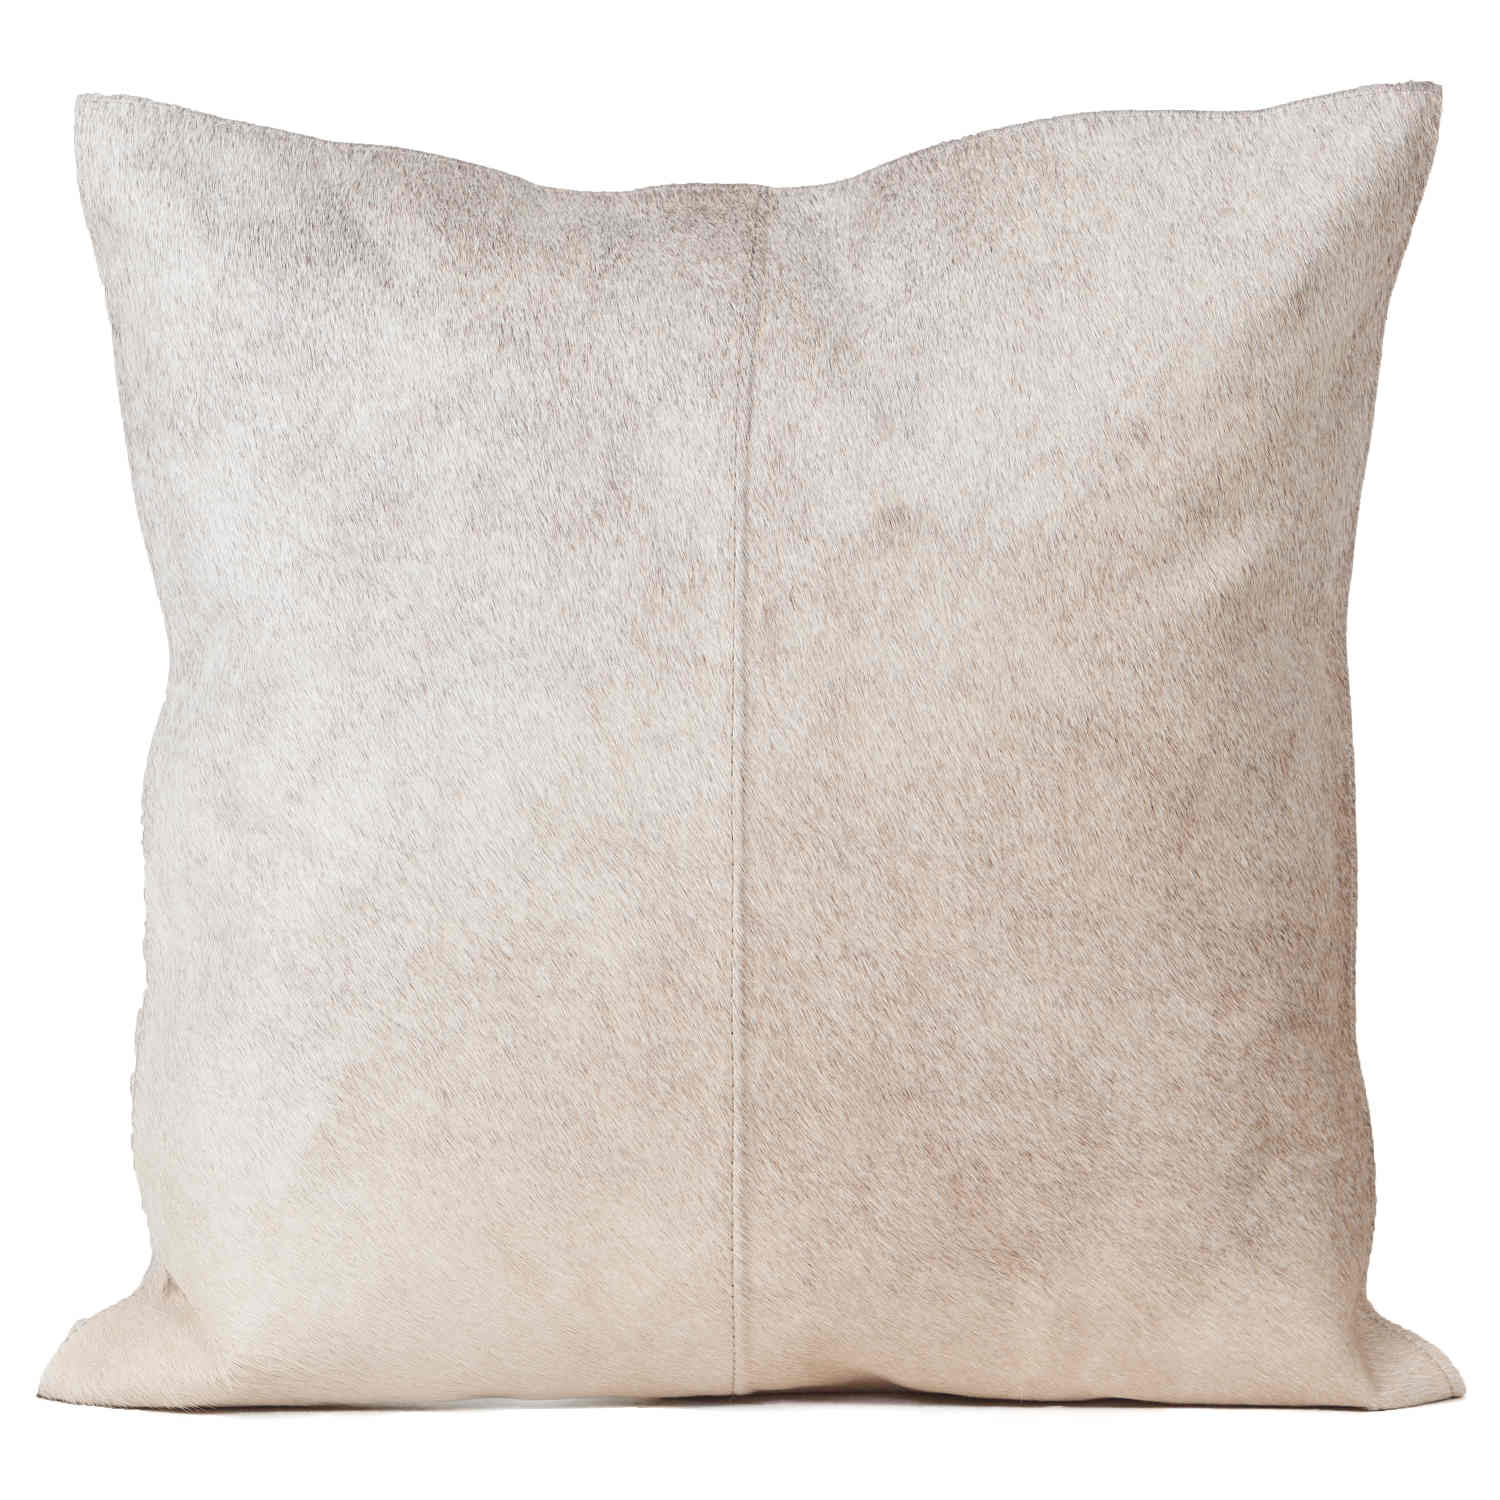 dorm throw rc marble and assorted pillow pillows decorative dormify as brown decor new favorite to with wells grey bed for especial